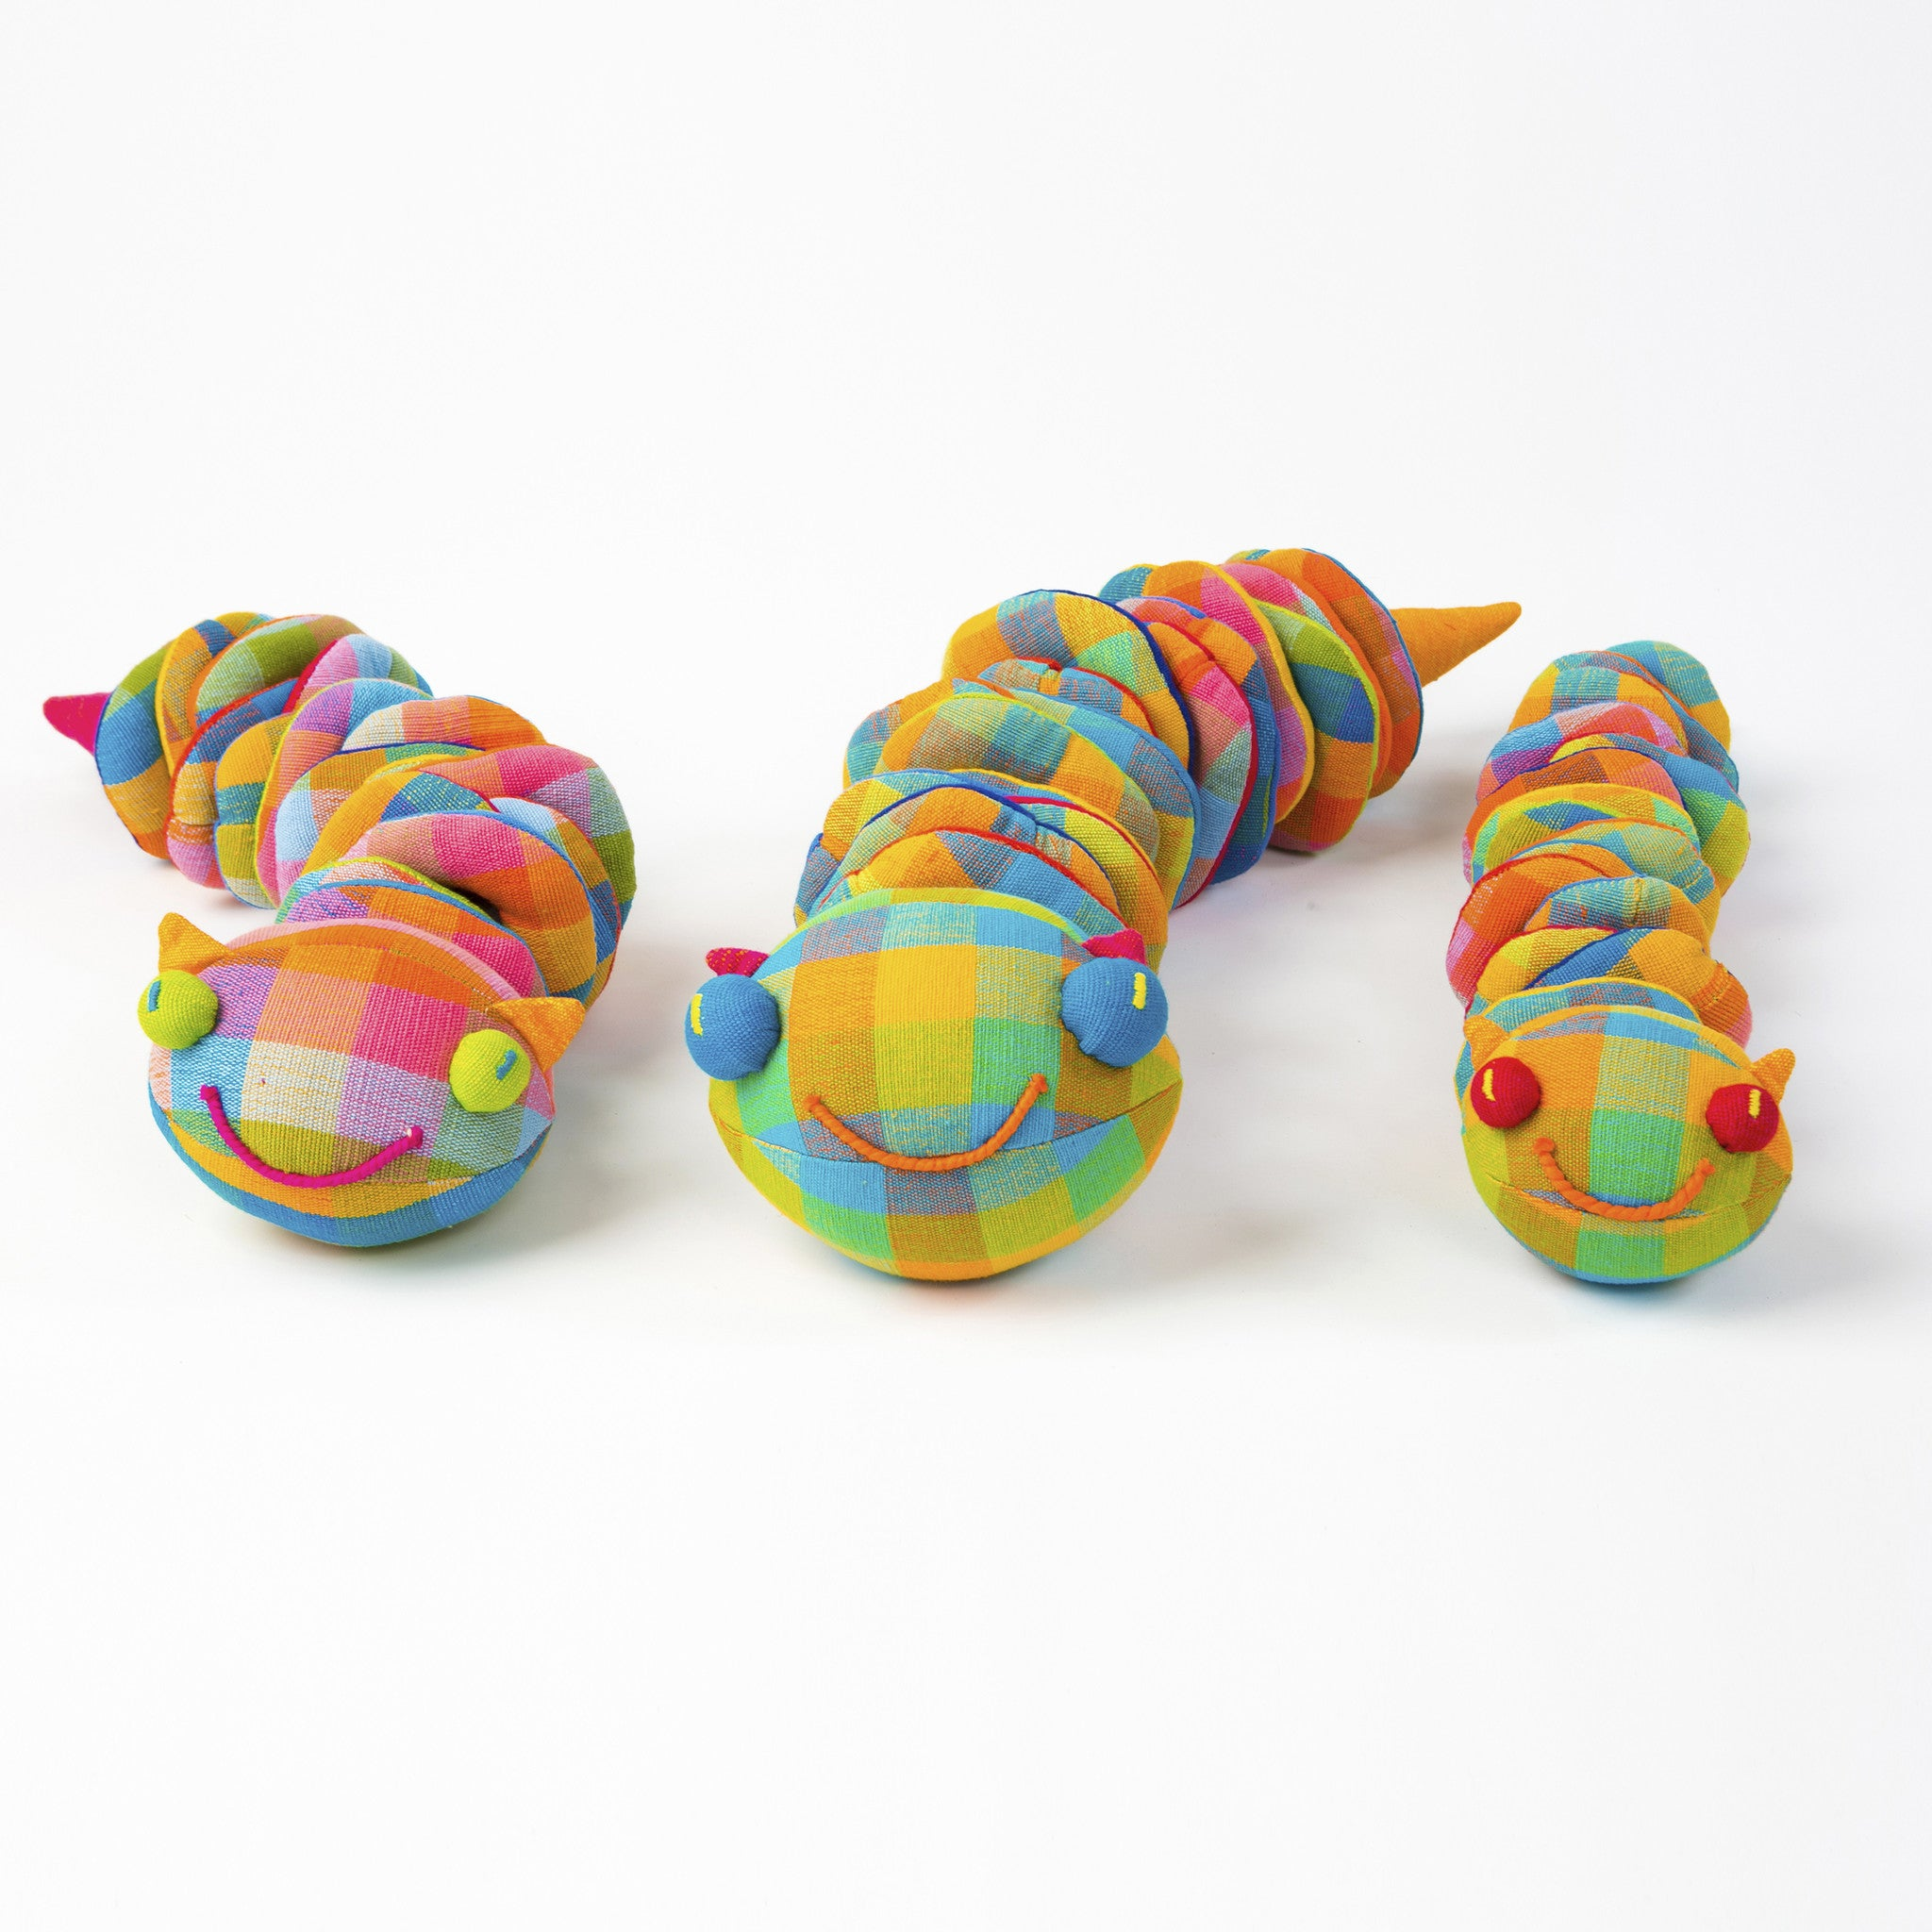 Casey, the Caterpillar (small, medium, & large sizes)